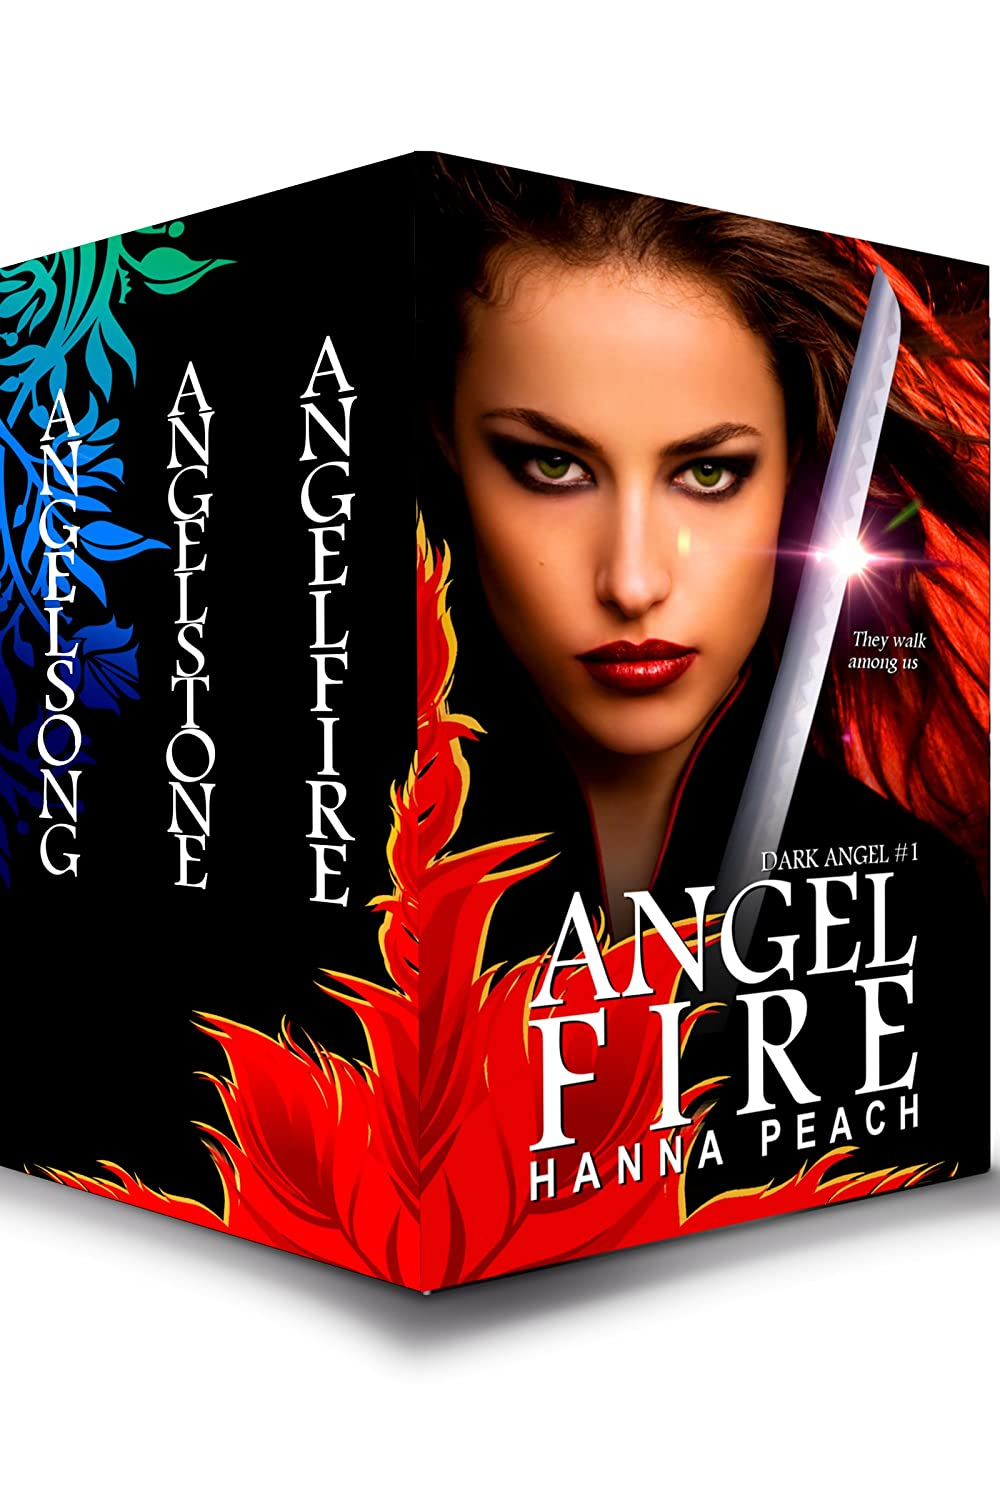 Dark-Angel-1-3-set-FINAL